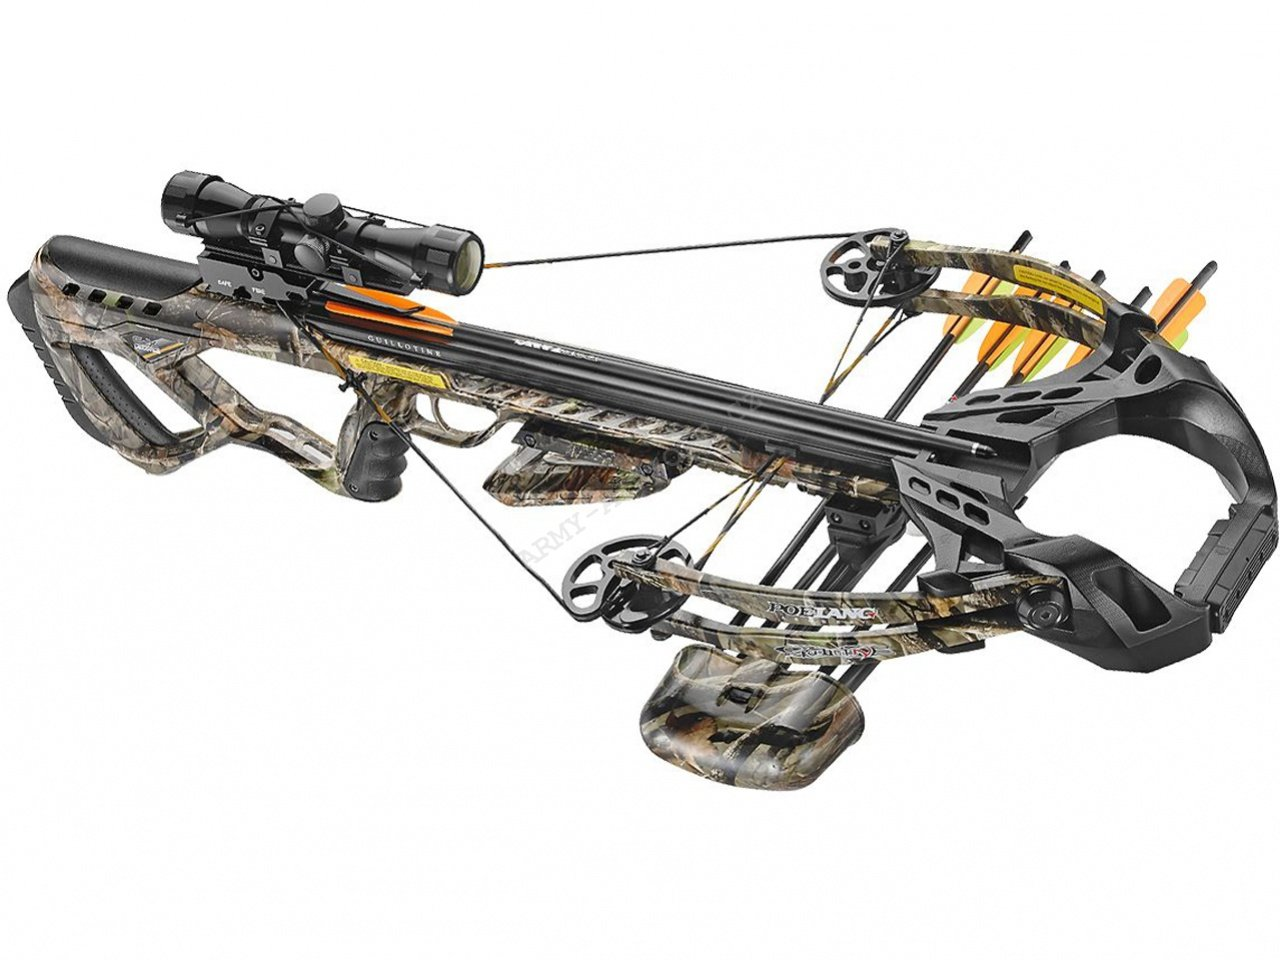 Kuše Beast Hunter Guillotine X 185lb camo - Beast Hunter